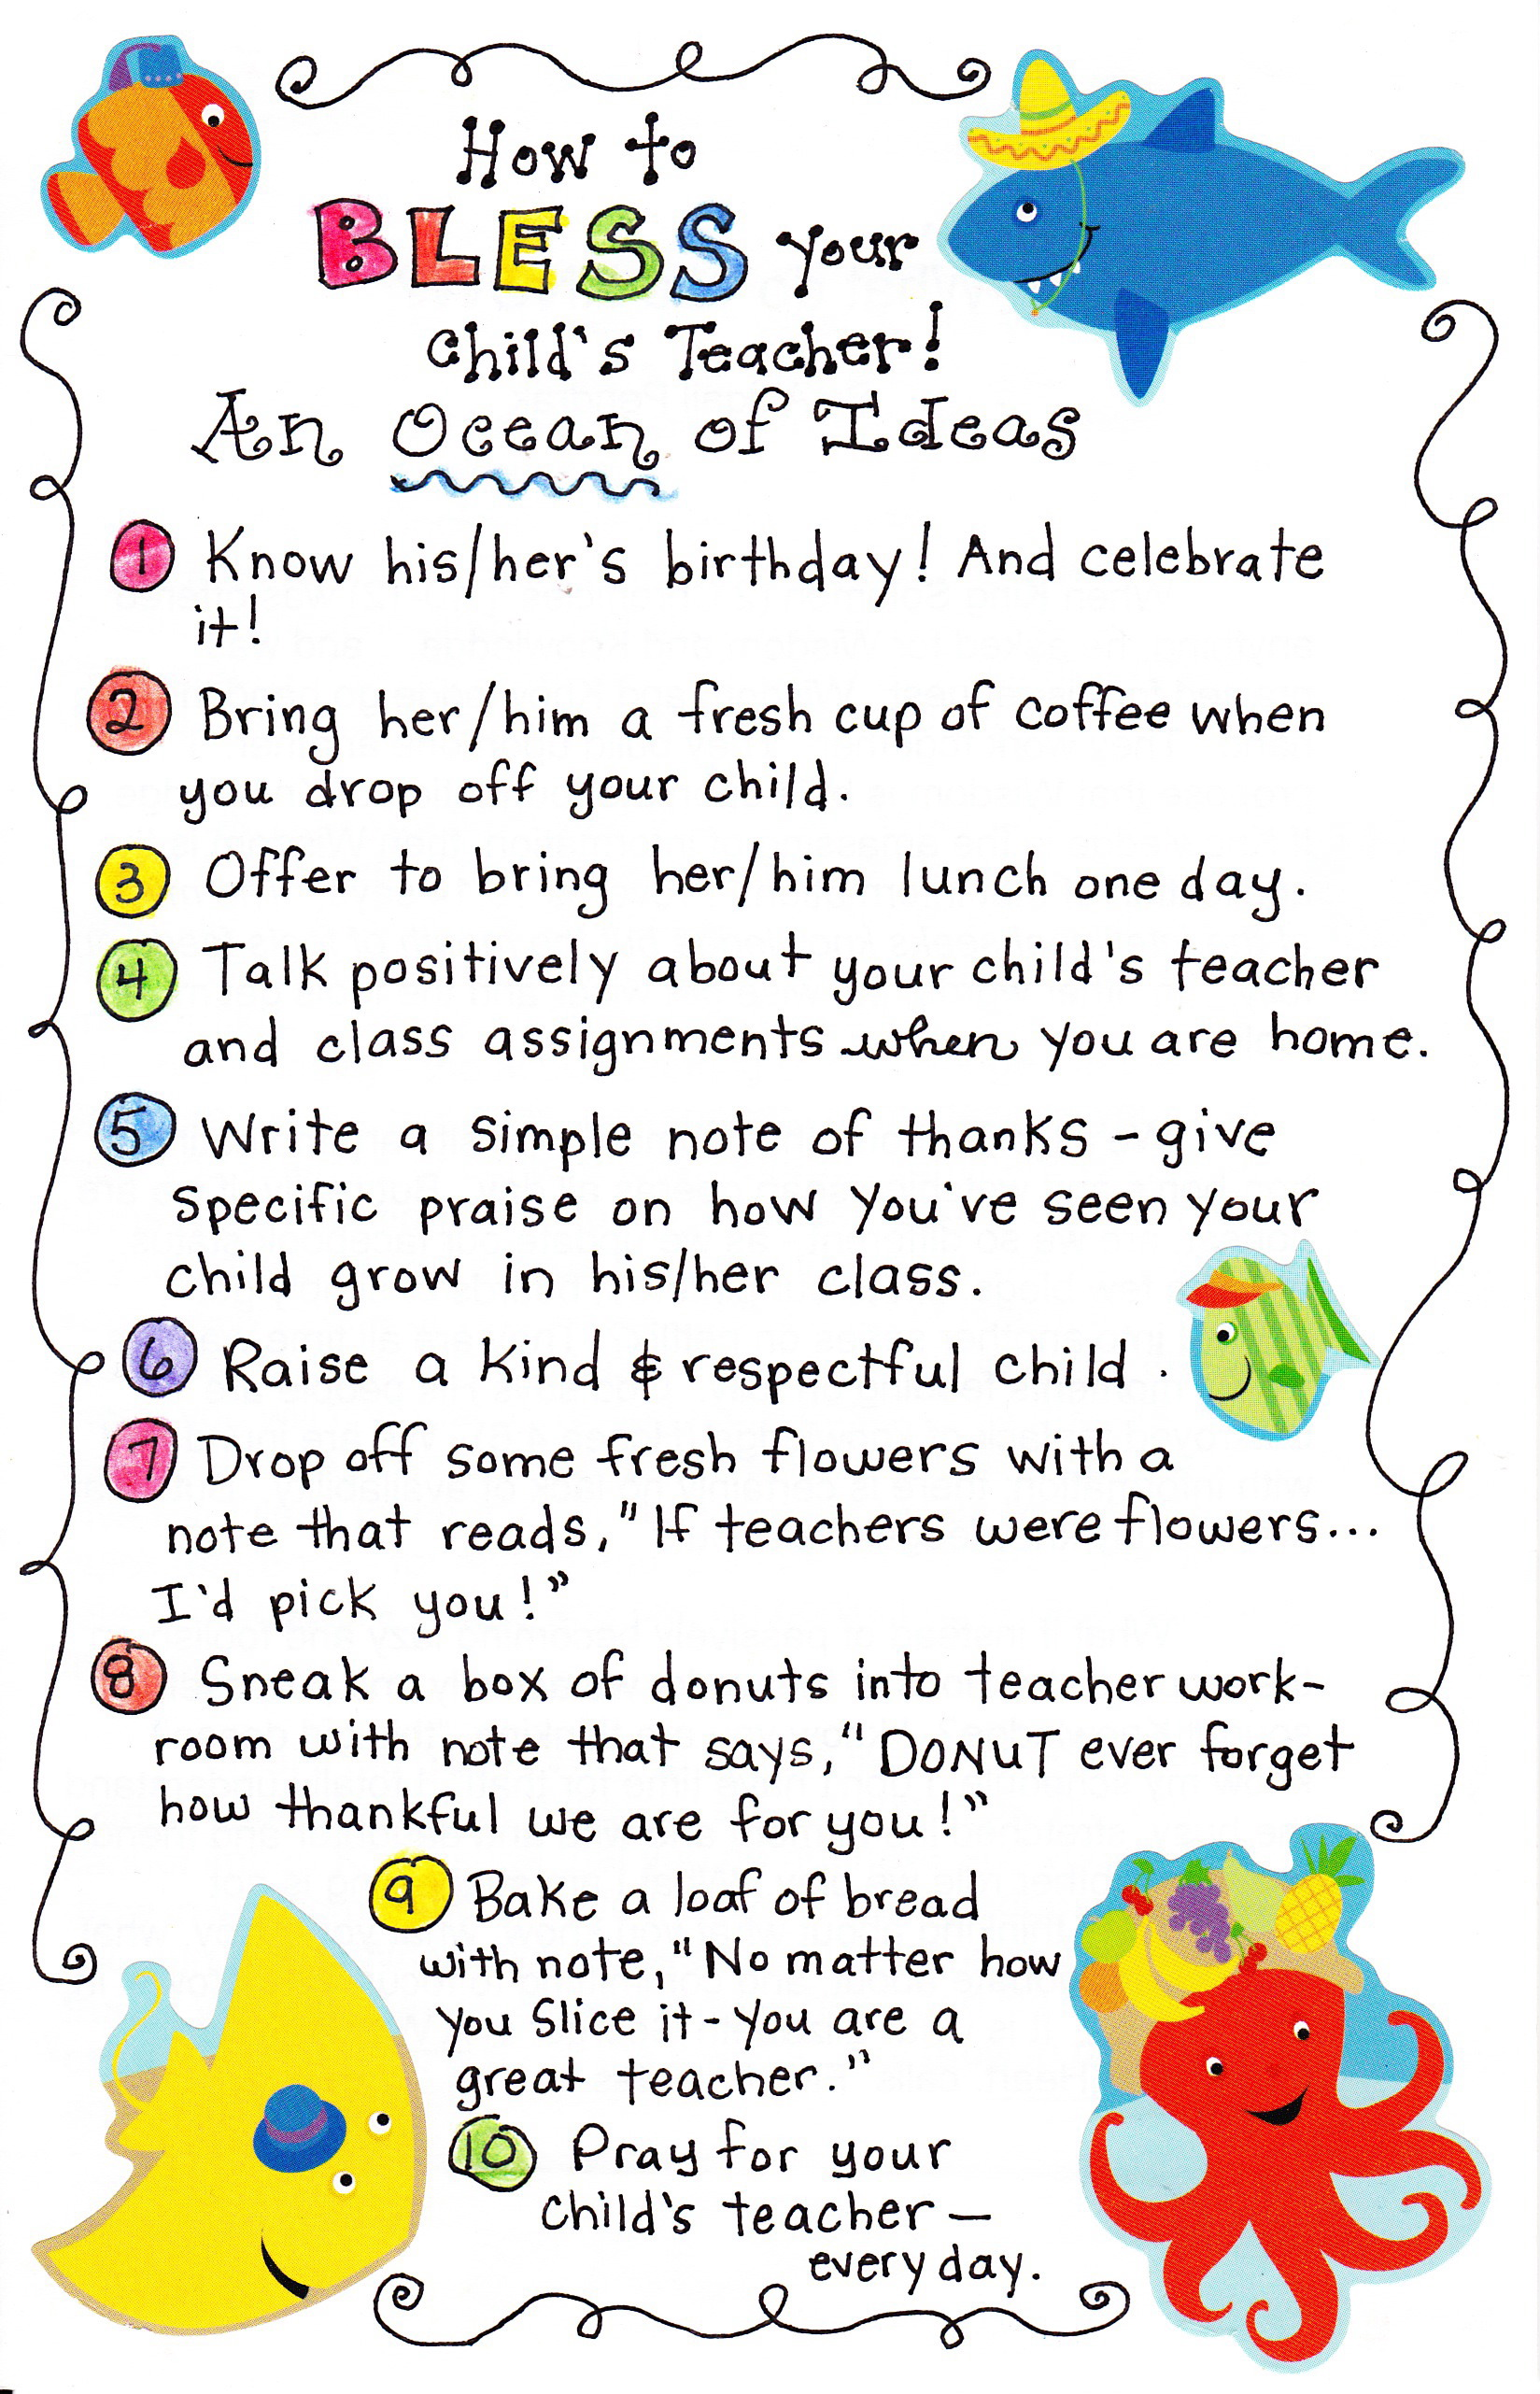 10 Ways To Bless Your Child's Teacher